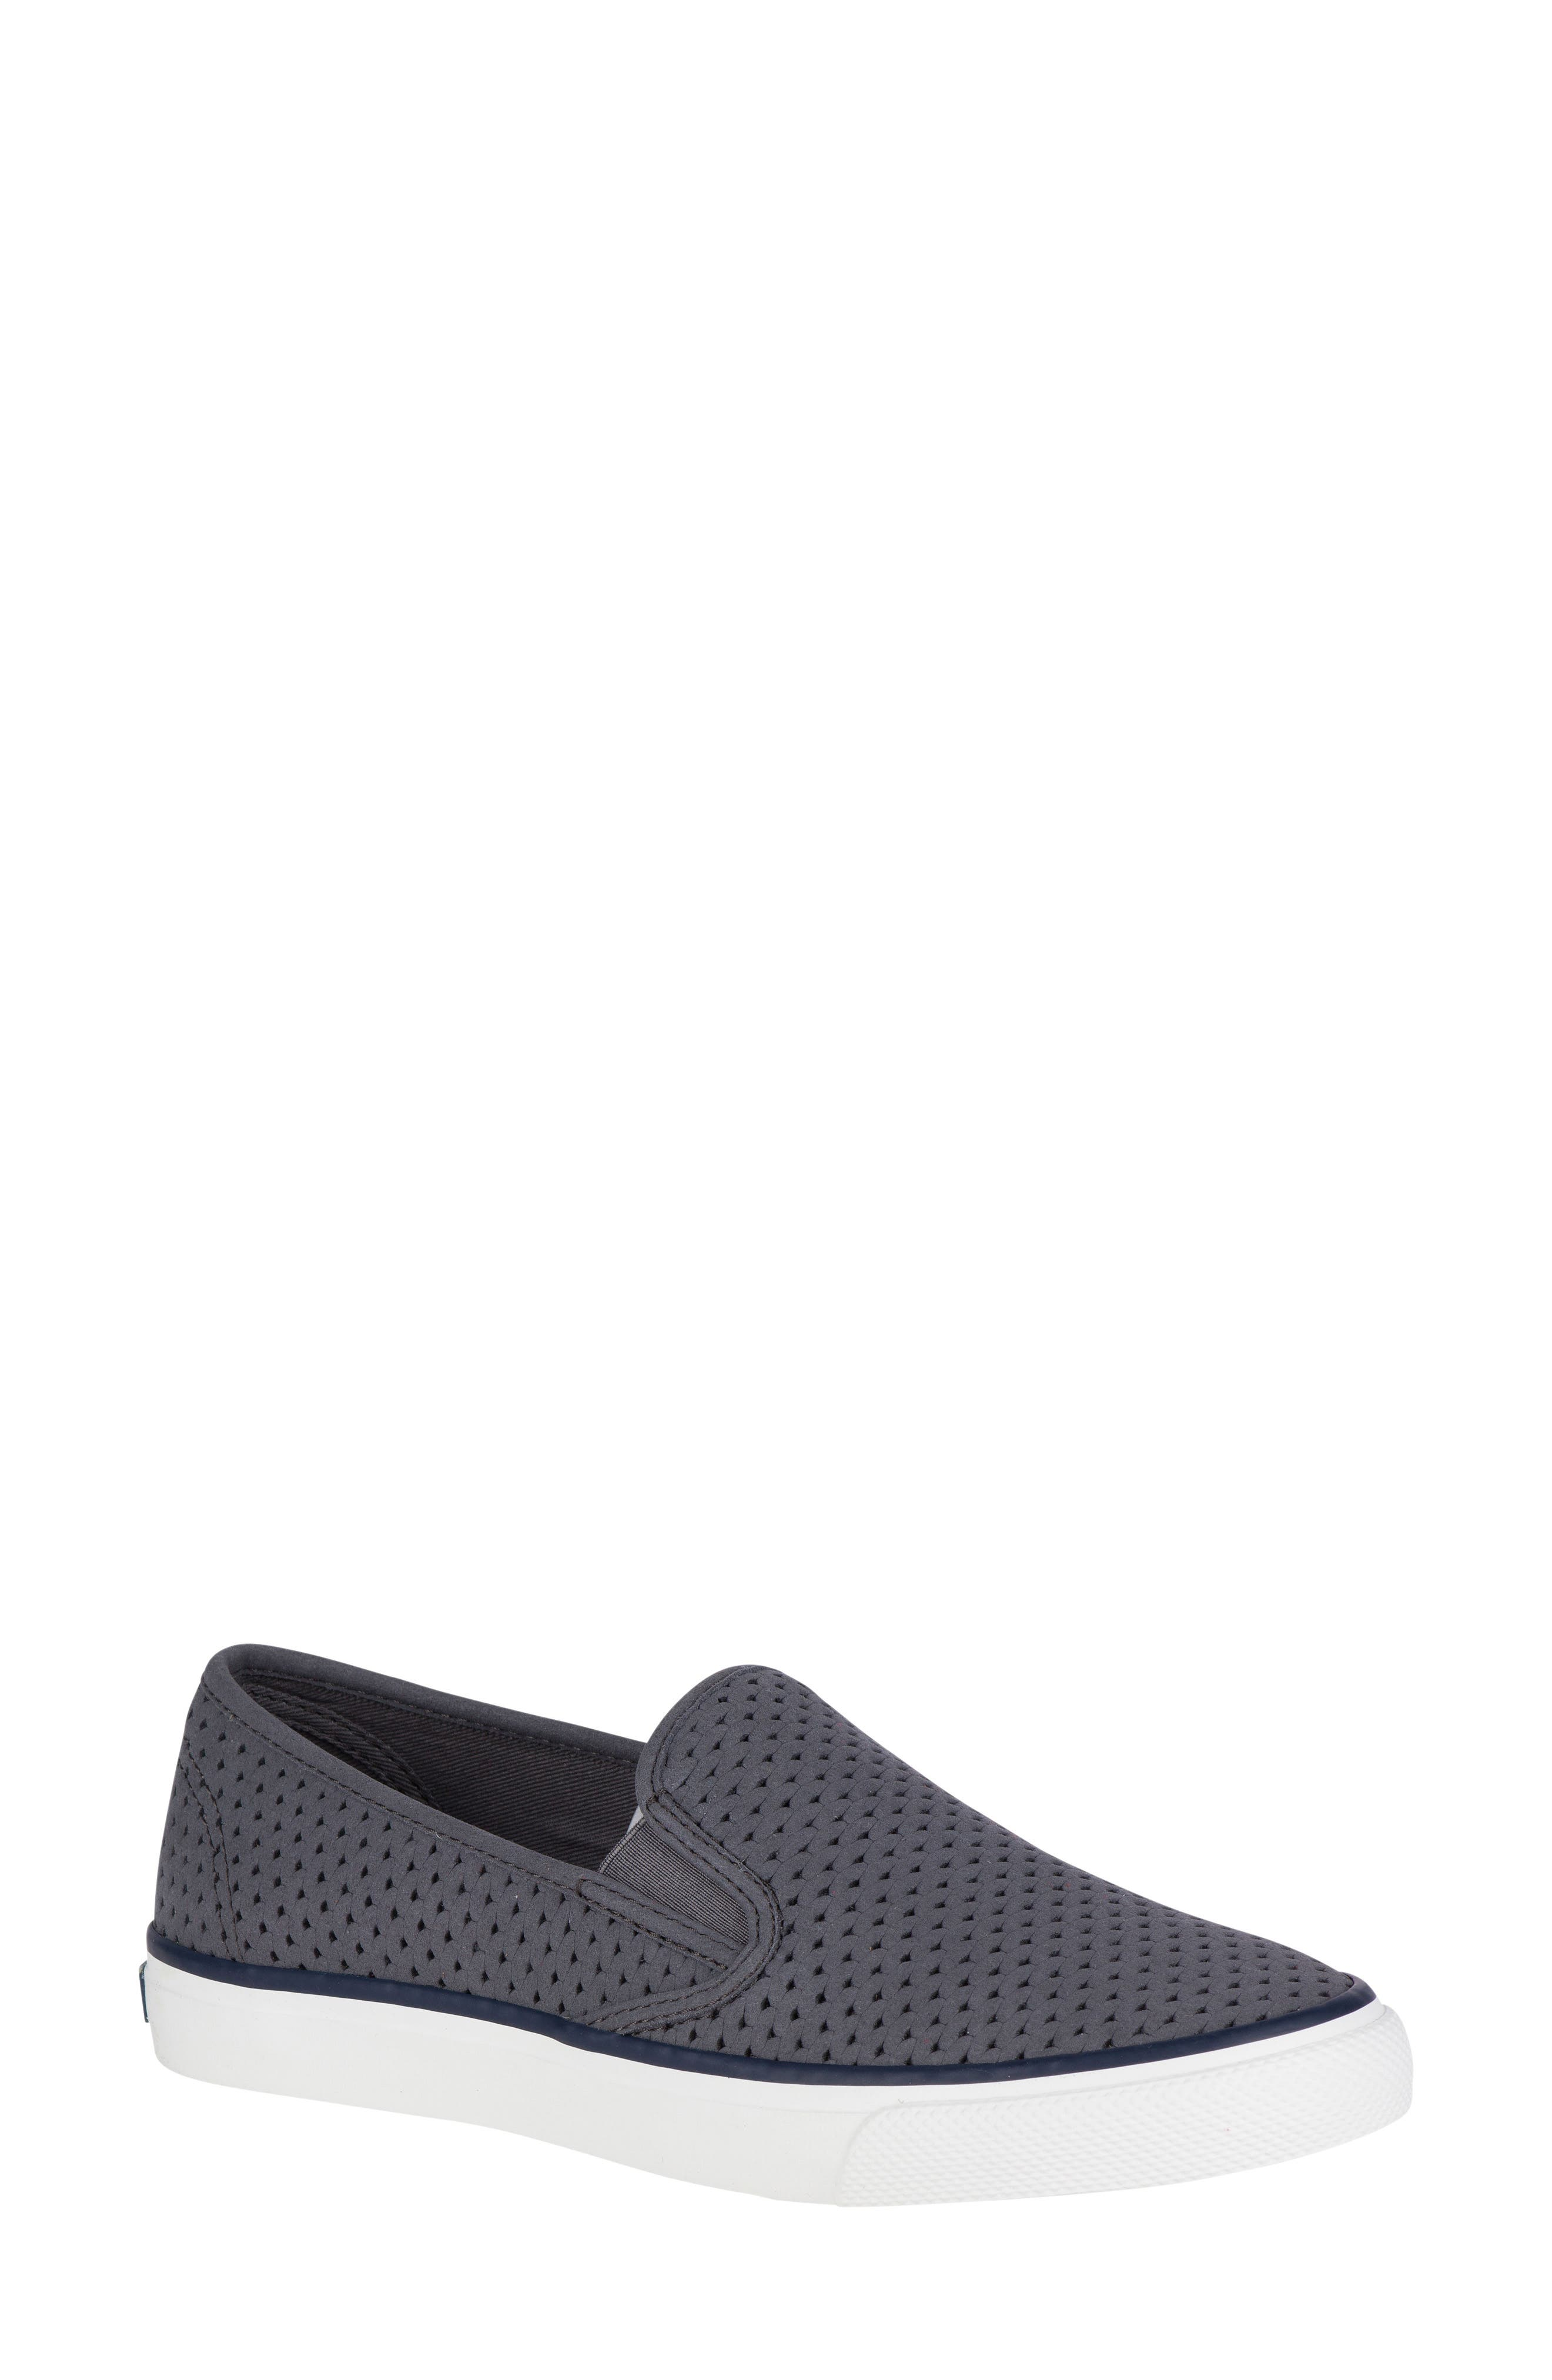 'Seaside' Perforated Slip-On Sneaker,                             Main thumbnail 5, color,